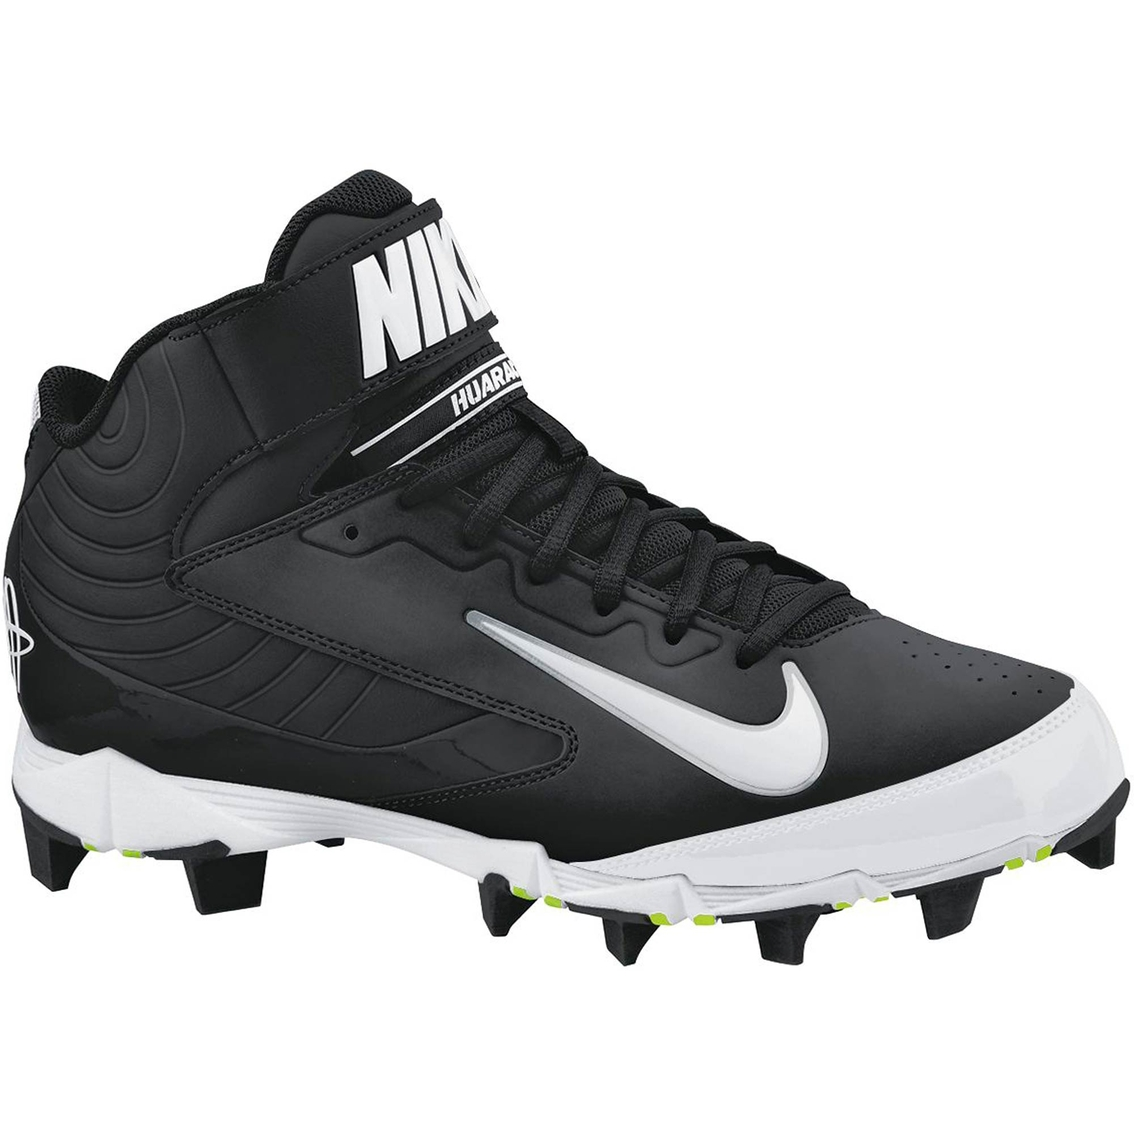 nike baseball huarache cleats